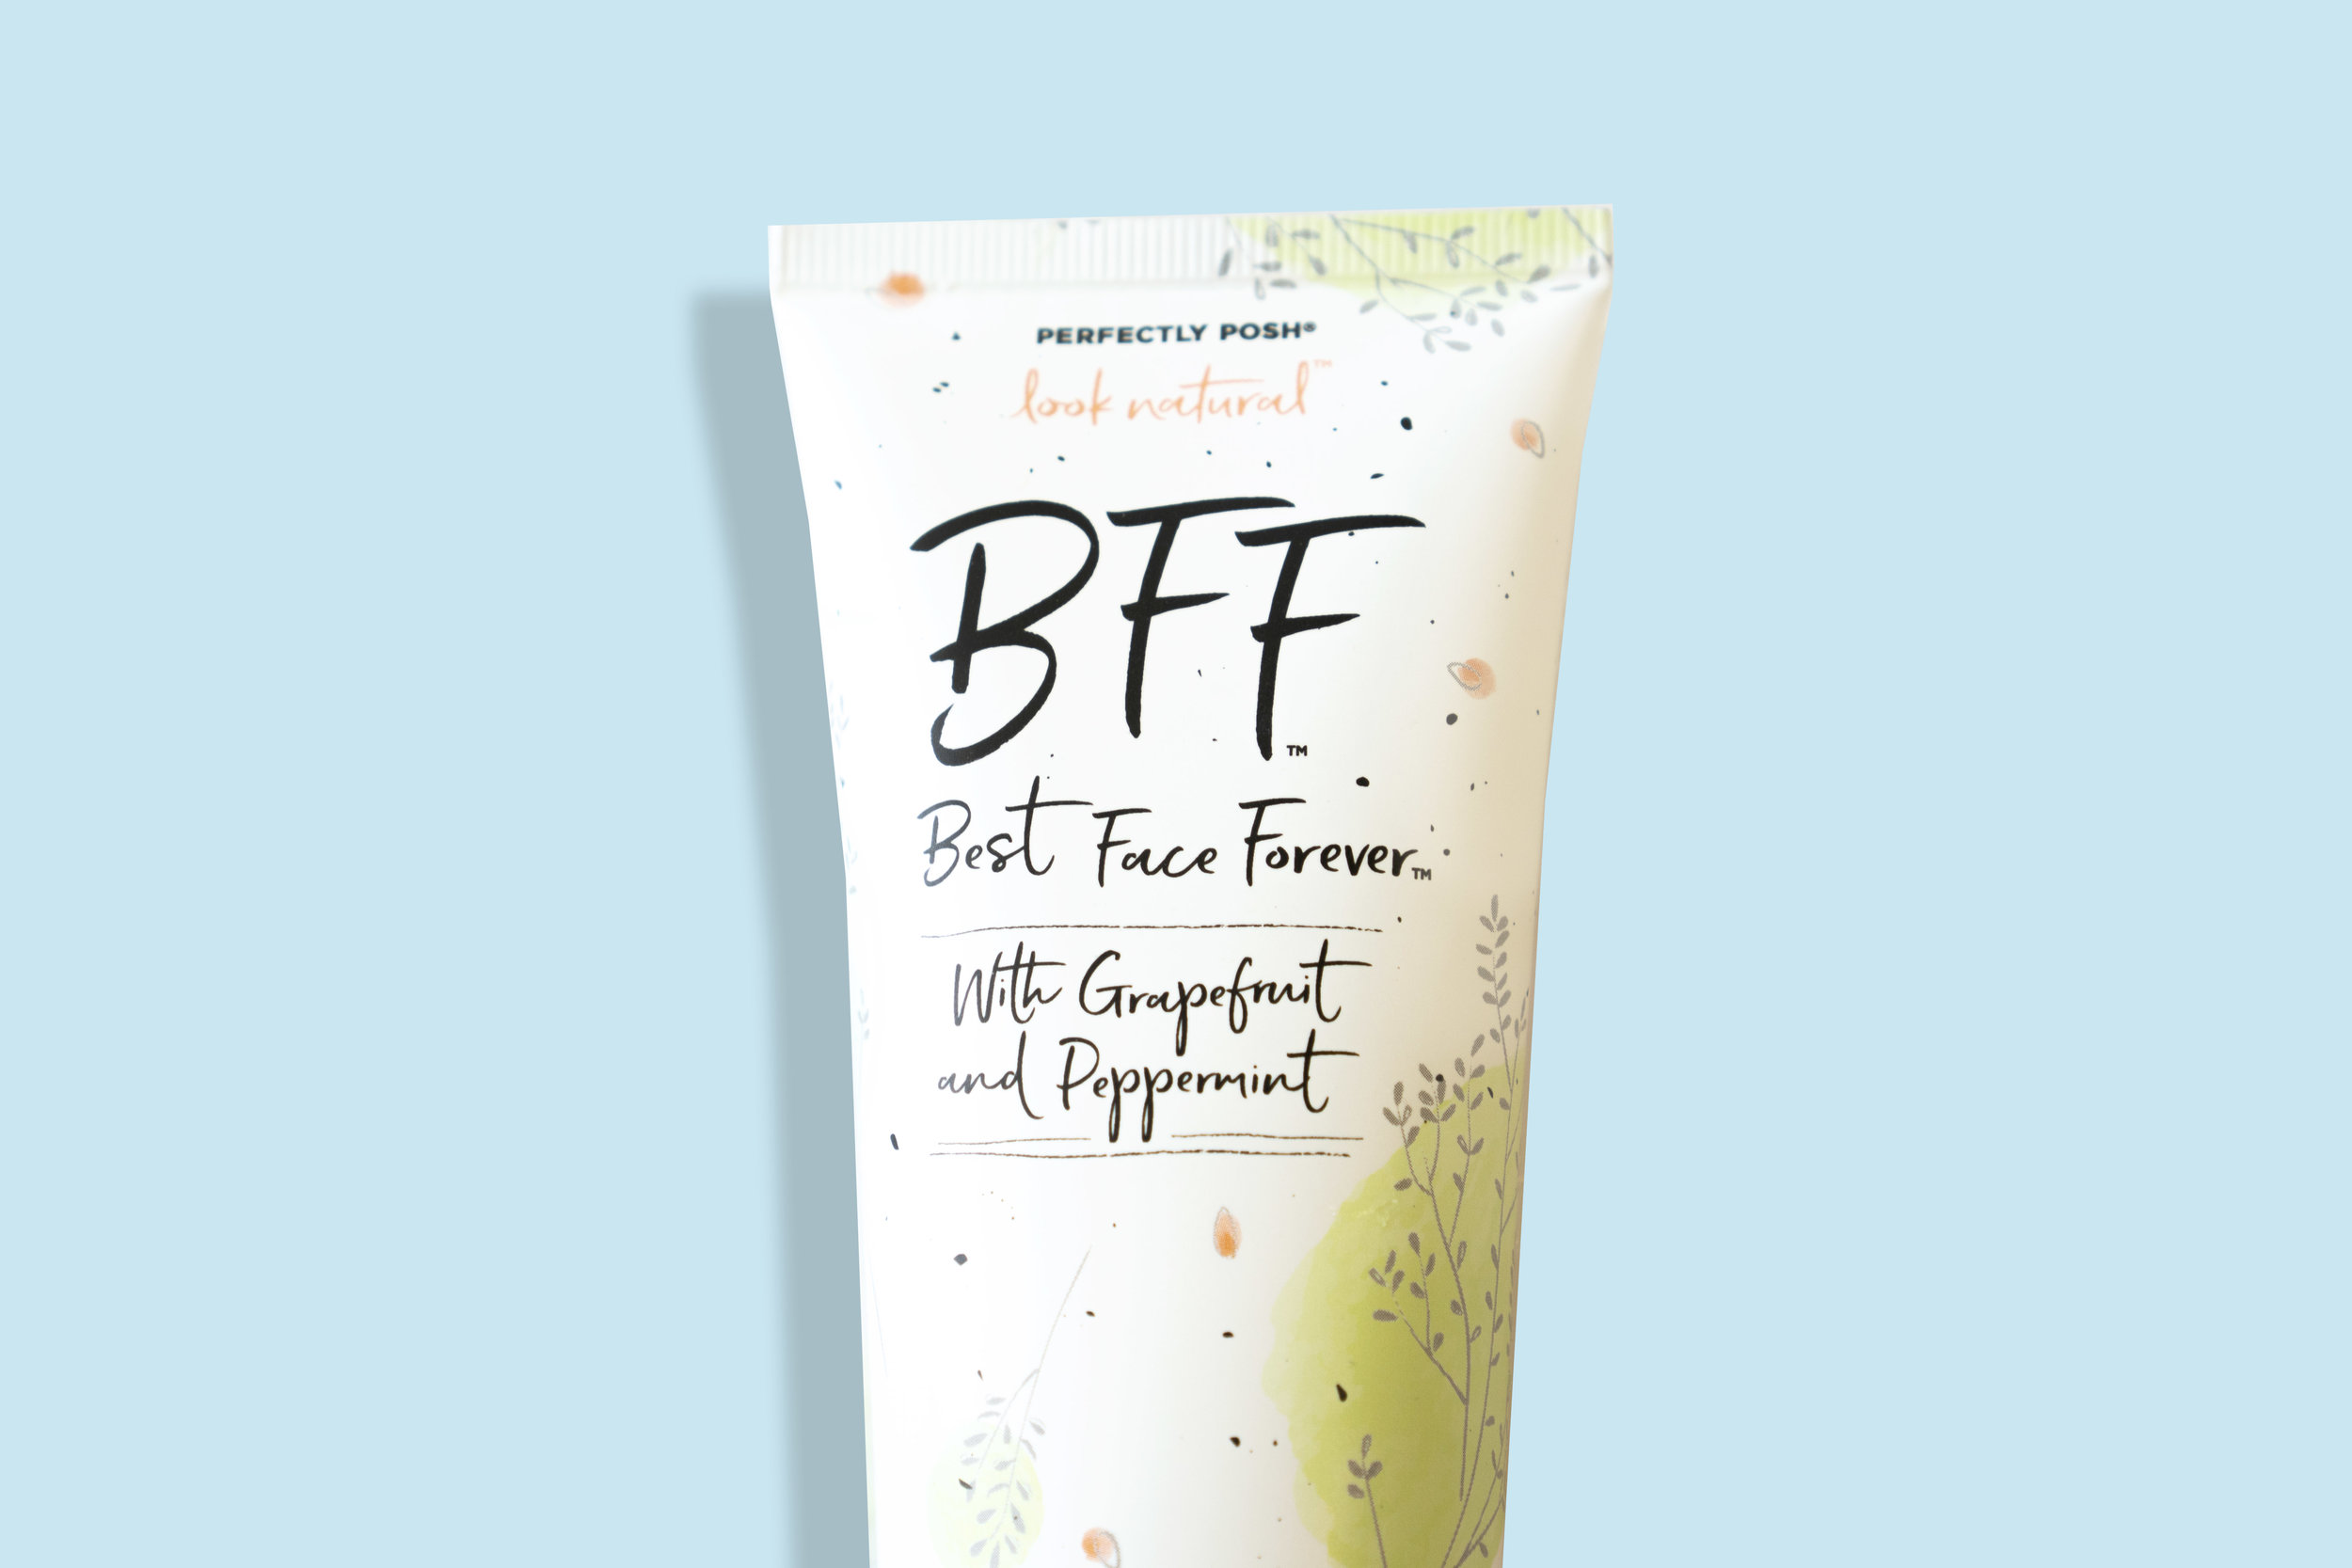 Perfectly Posh BFF: Best Face Forever image close up on blue background.